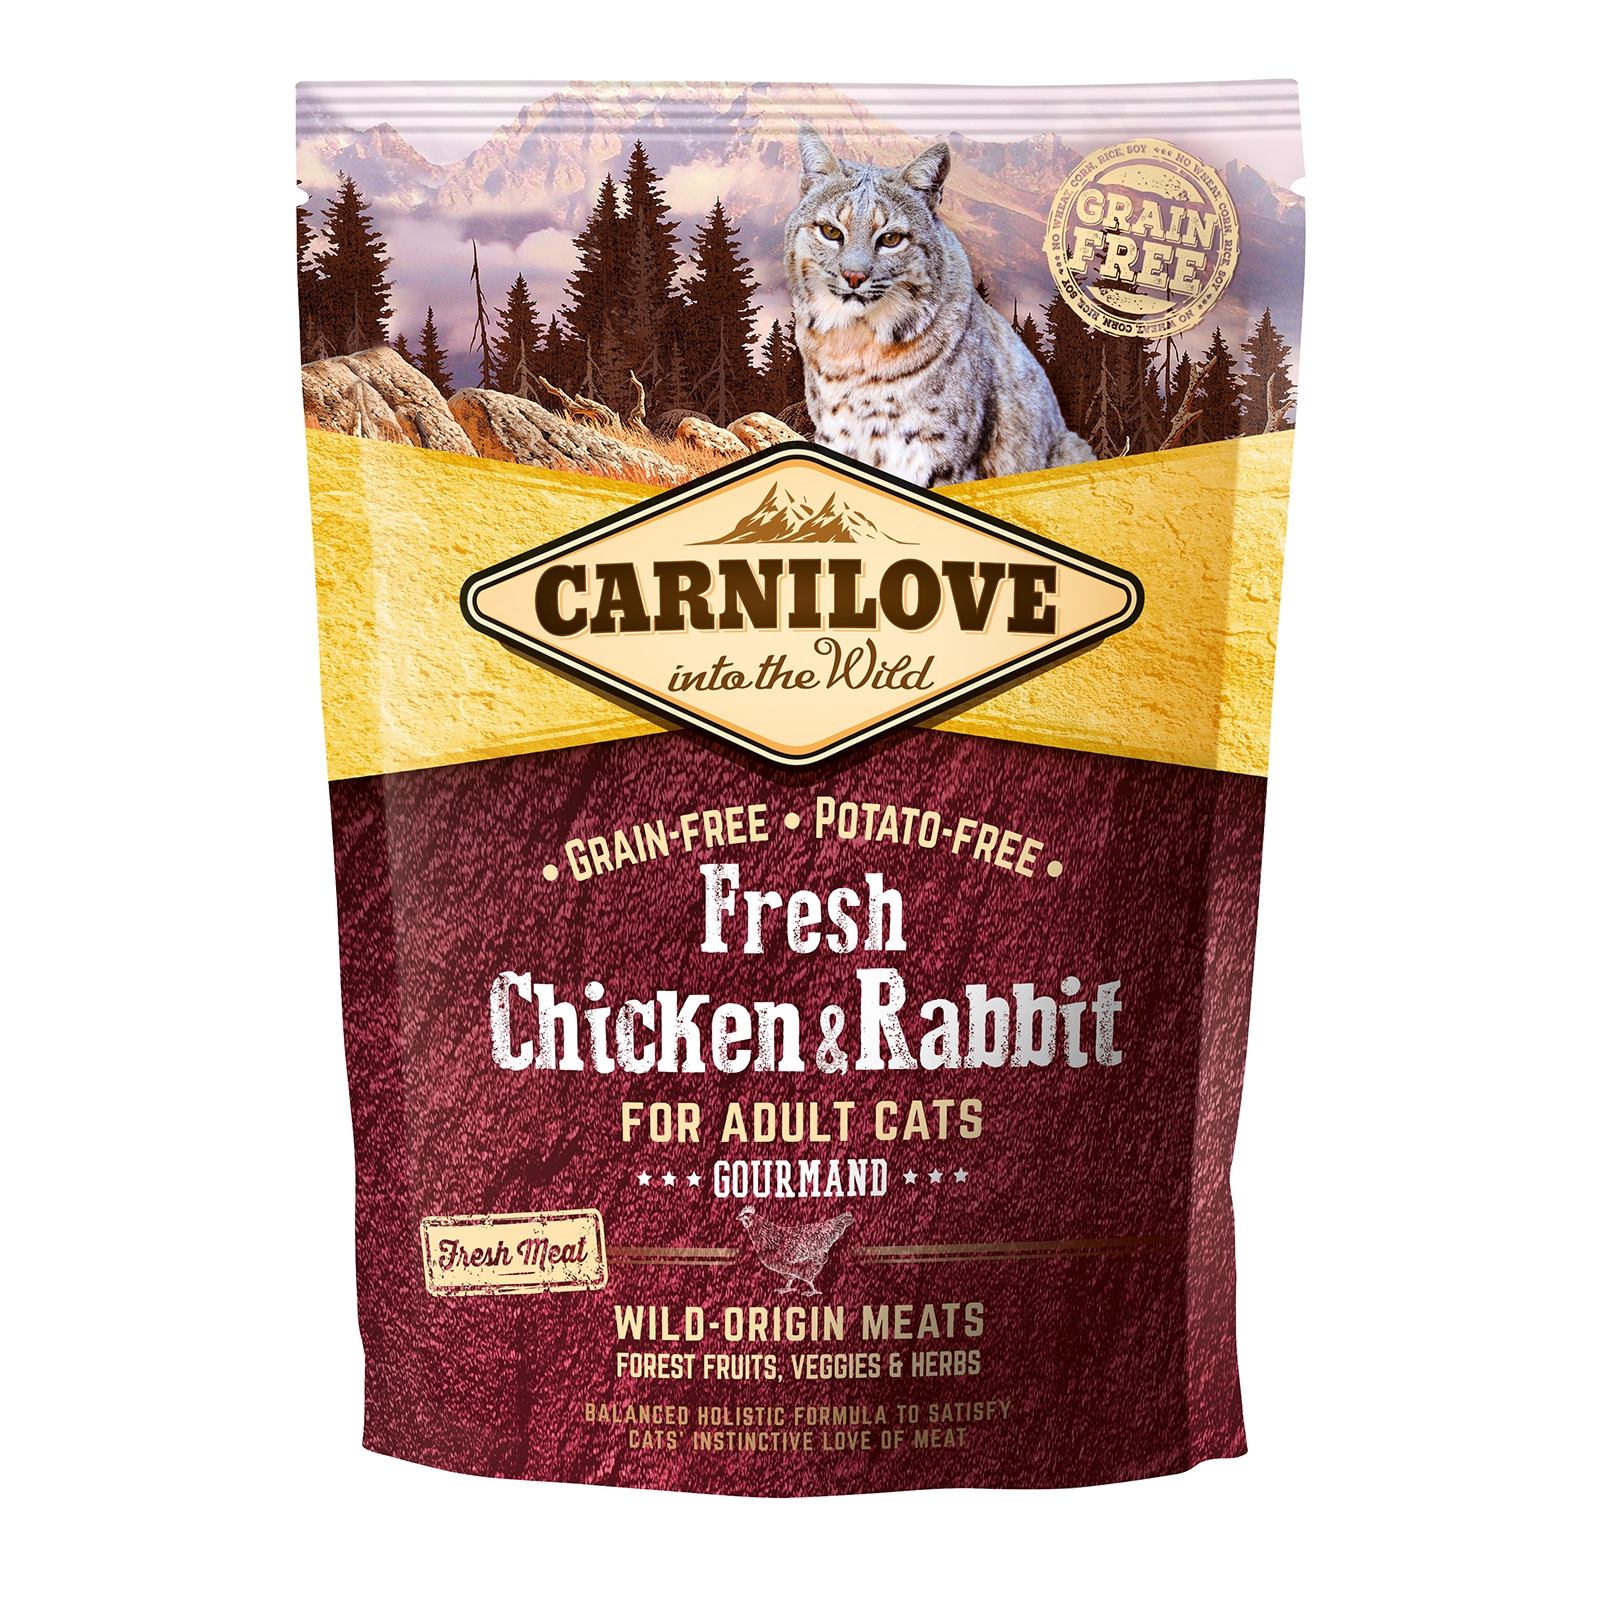 Carnilove Fresh Chicken and Rabbit Gourmand for Adult Cats, 400 g imagine